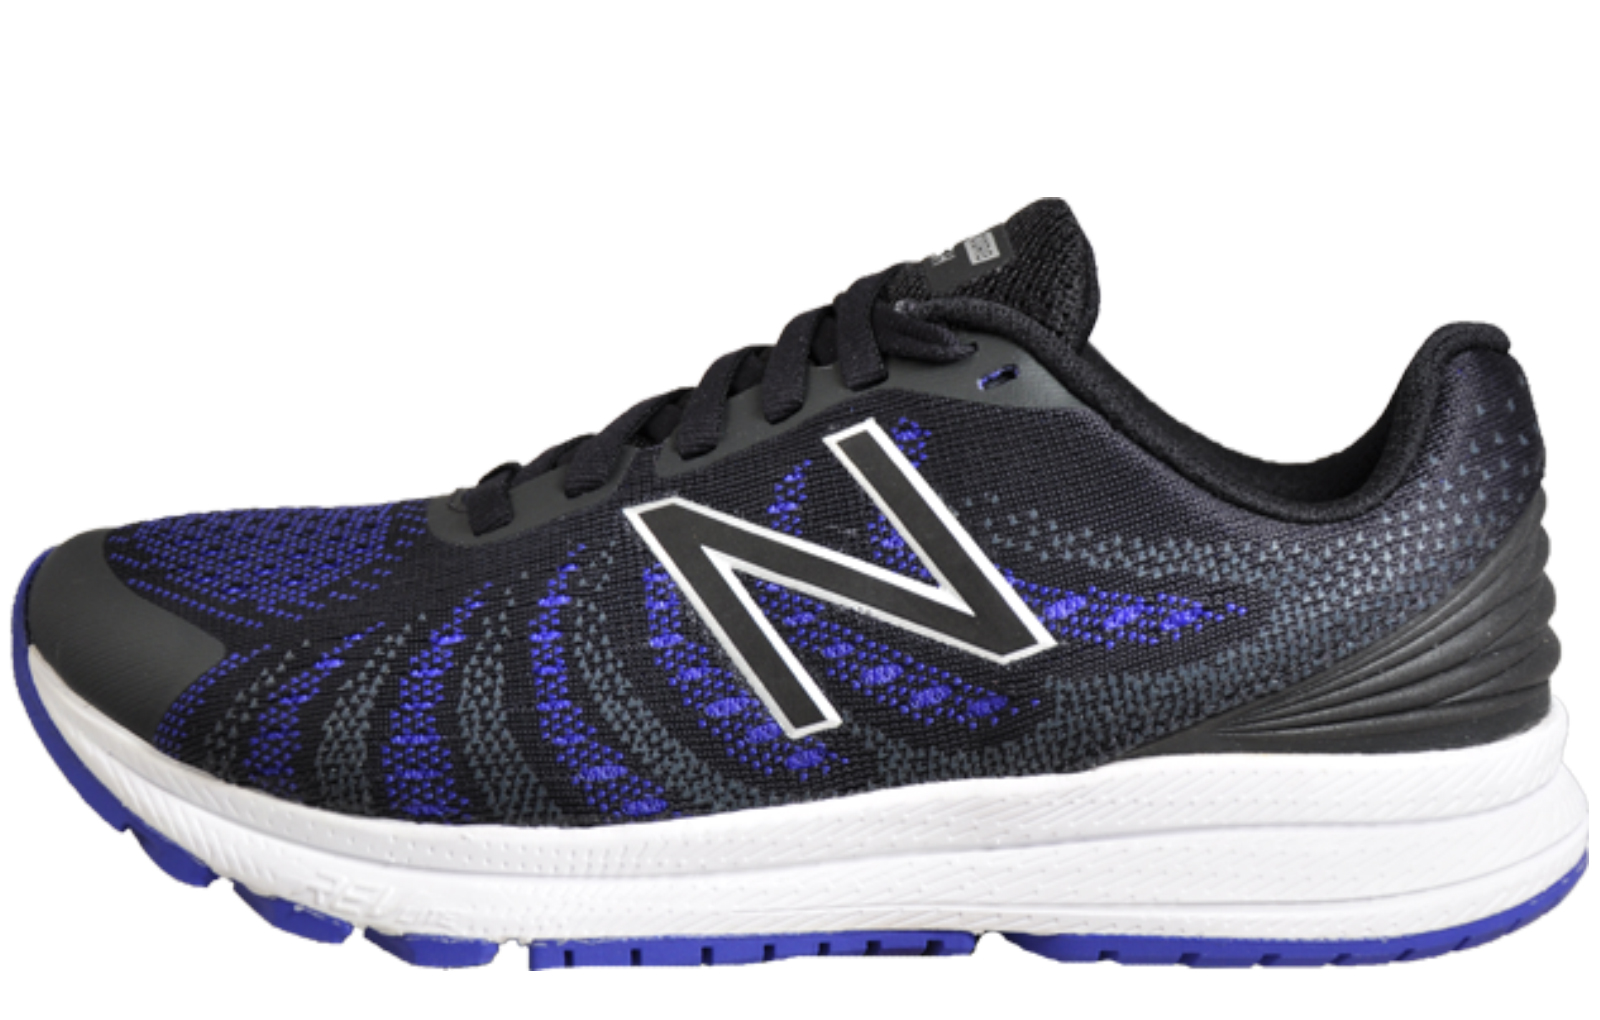 New Balance Fuel Core Rush v3 Womens - NB173633